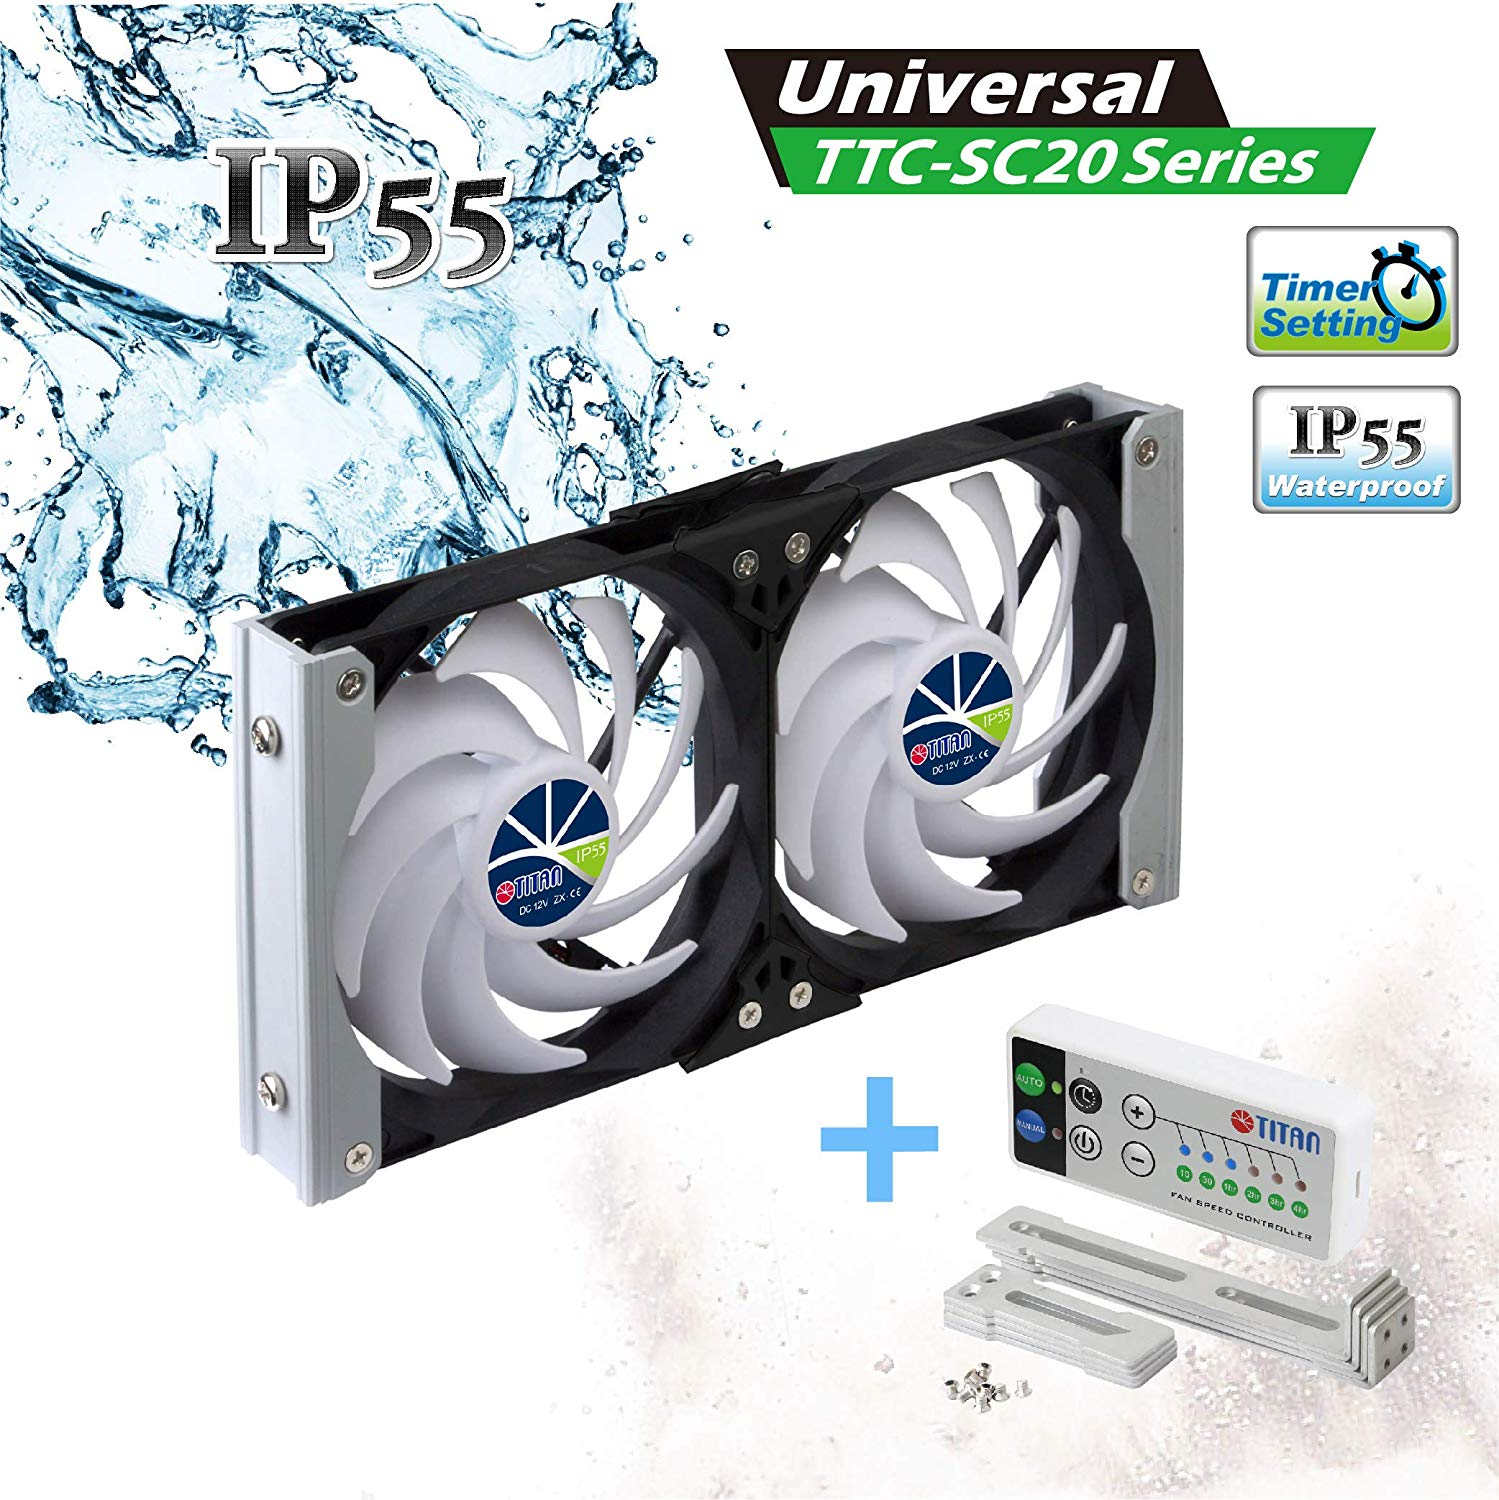 Titan TTC-SC20 Waterproof Double Rack Mount Ventilation Refrigerator Cooling Fan for RV